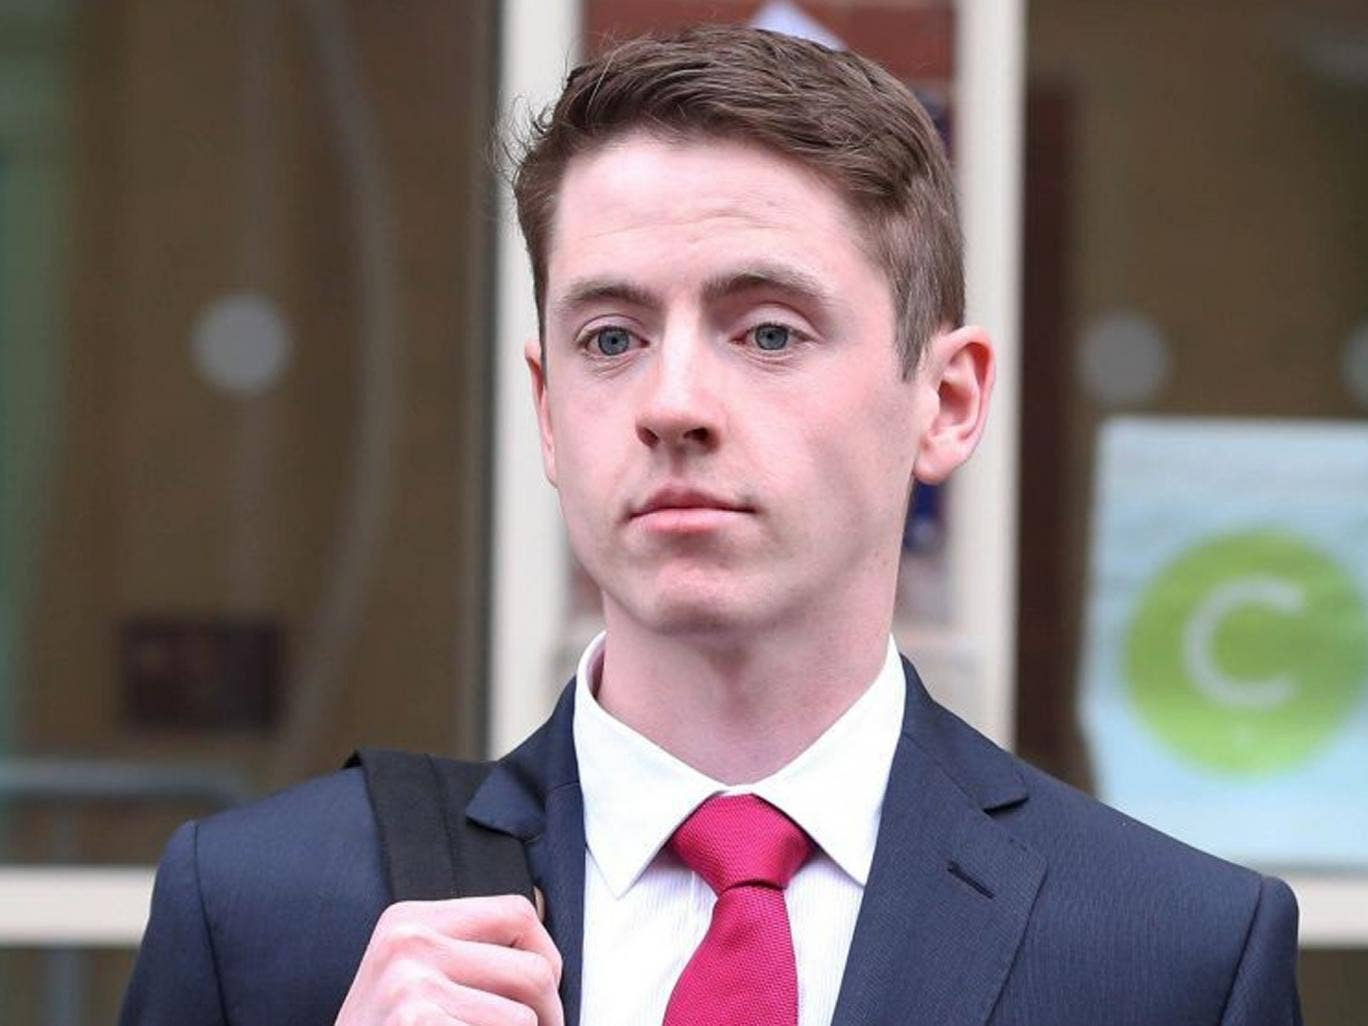 James White, 21, admitted causing unnecessary suffering to the female hamster in February last year